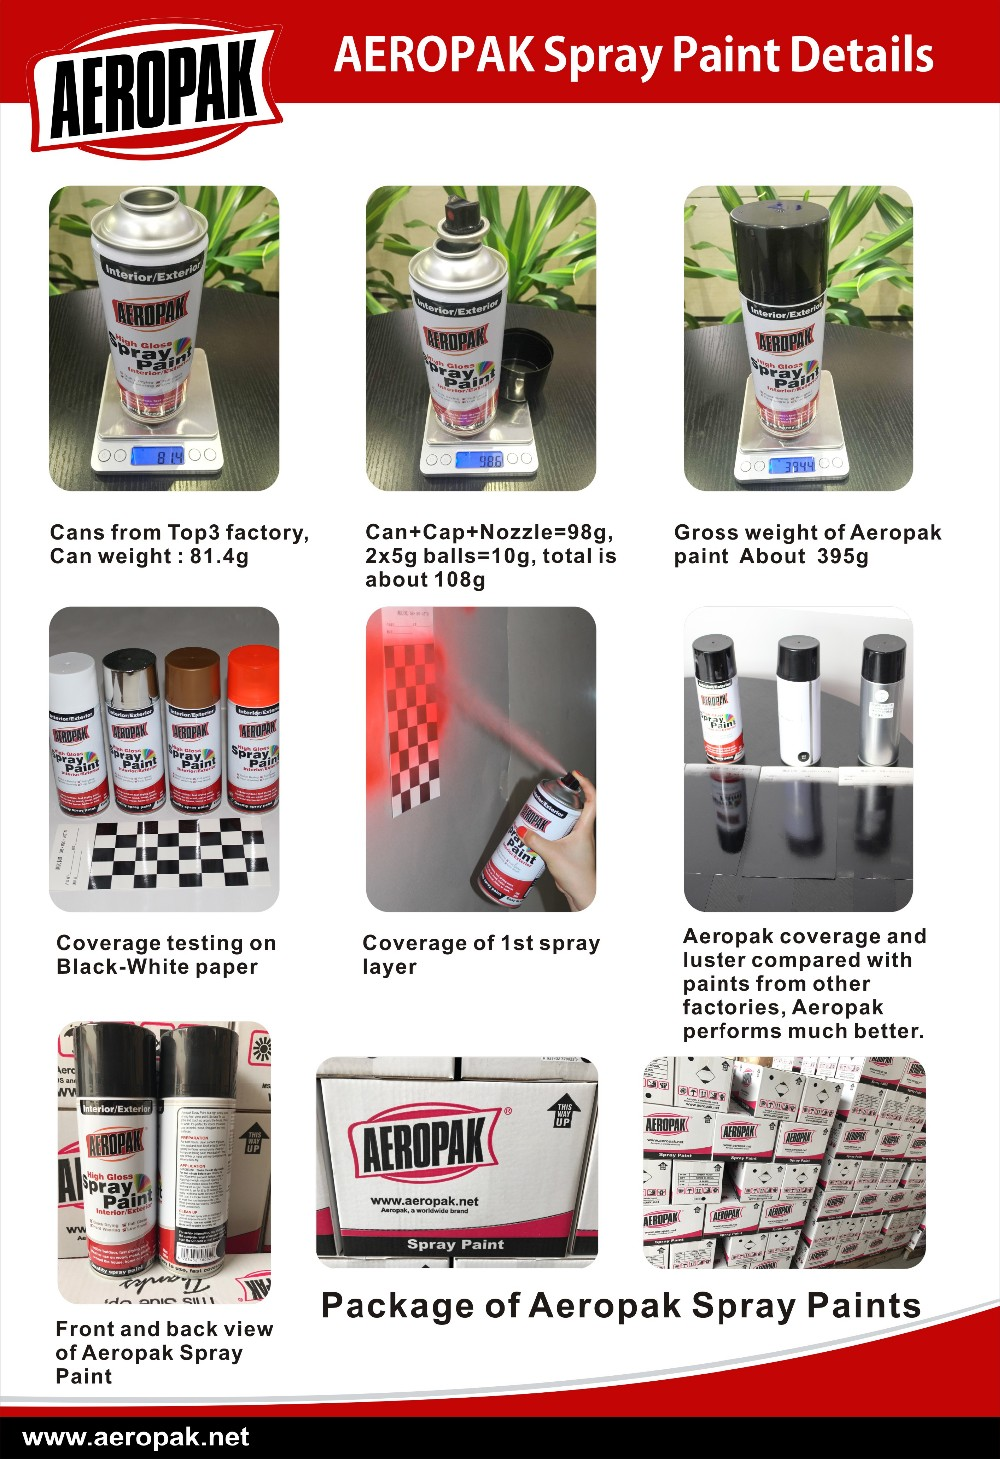 AEROPAK High Quality Spray Paint MSDS Aerosol Paint With Many Colors